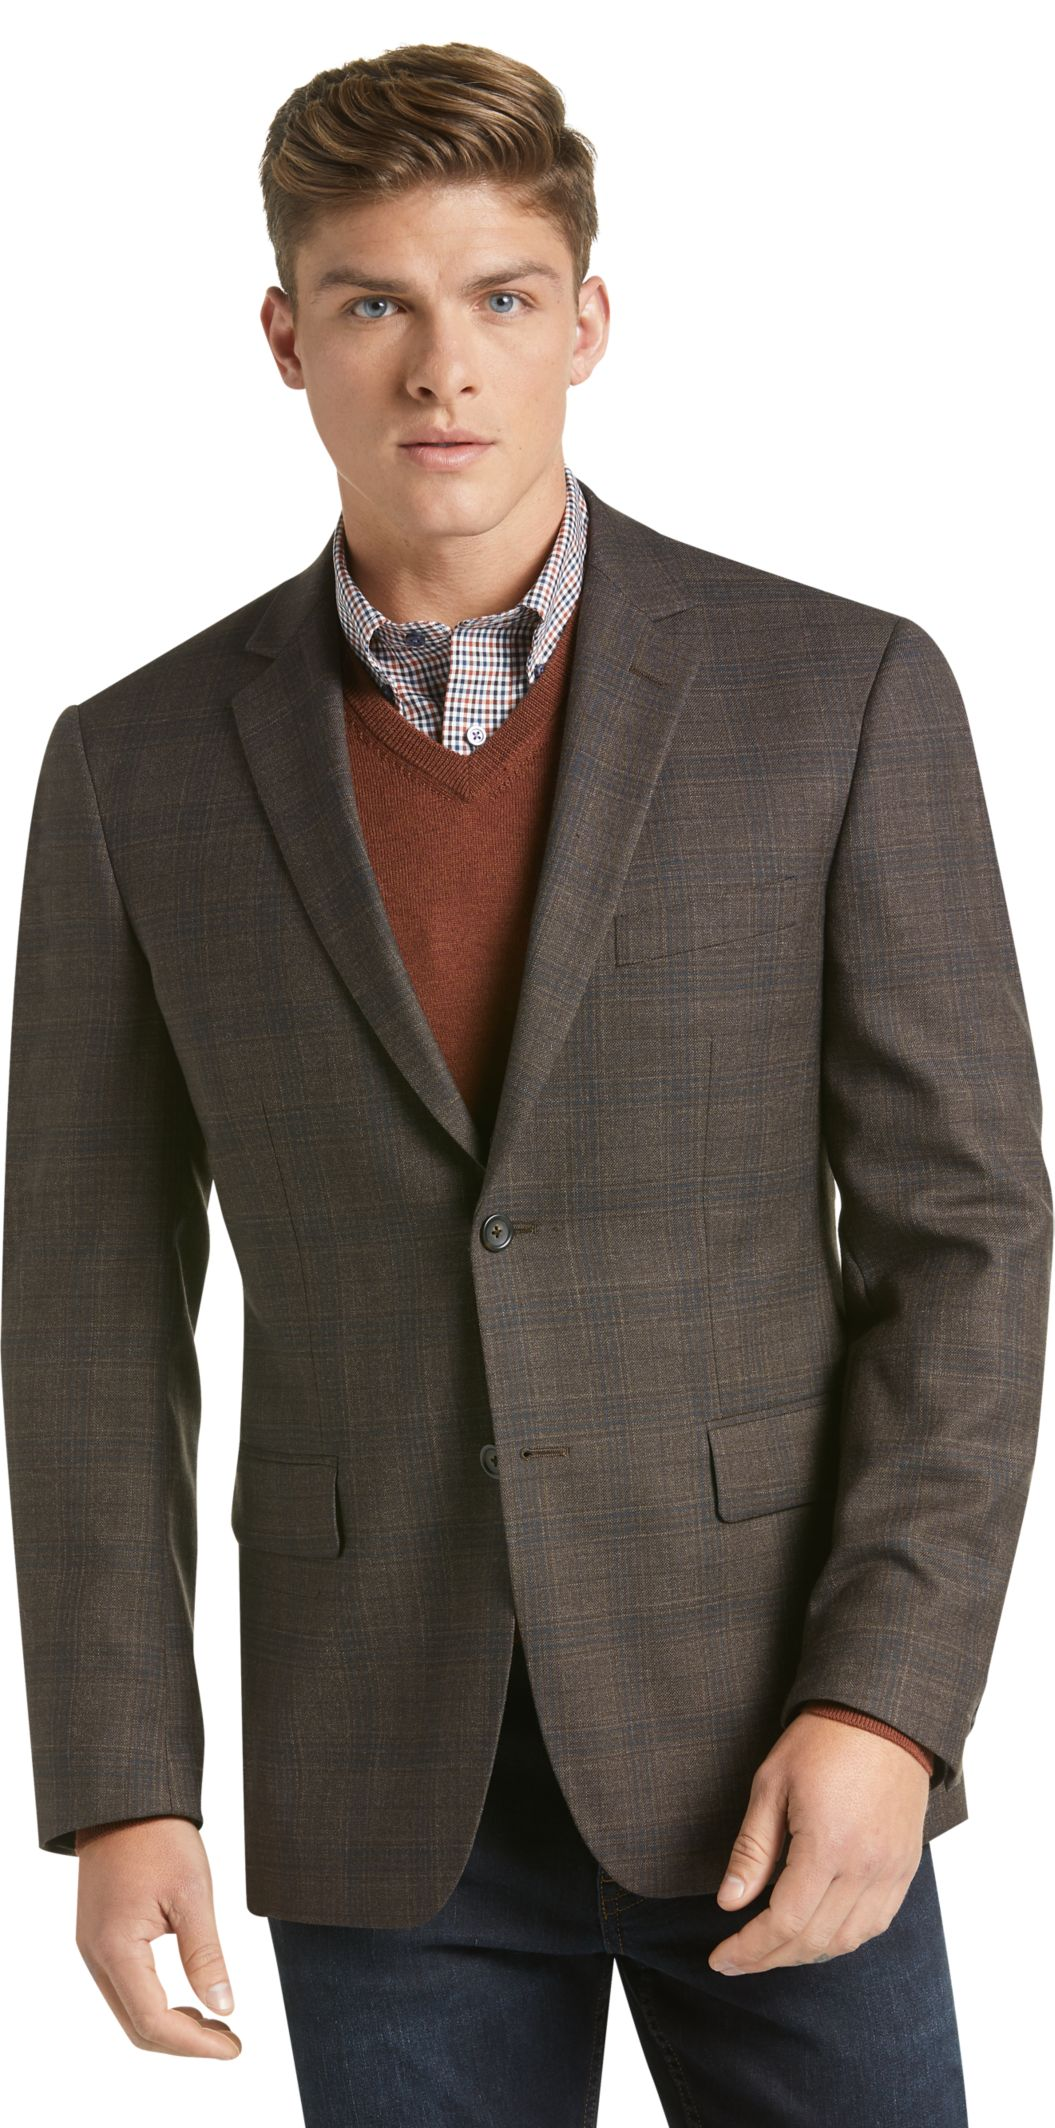 Traveler Collection Tailored Fit Plaid Sportcoat CLEARANCE